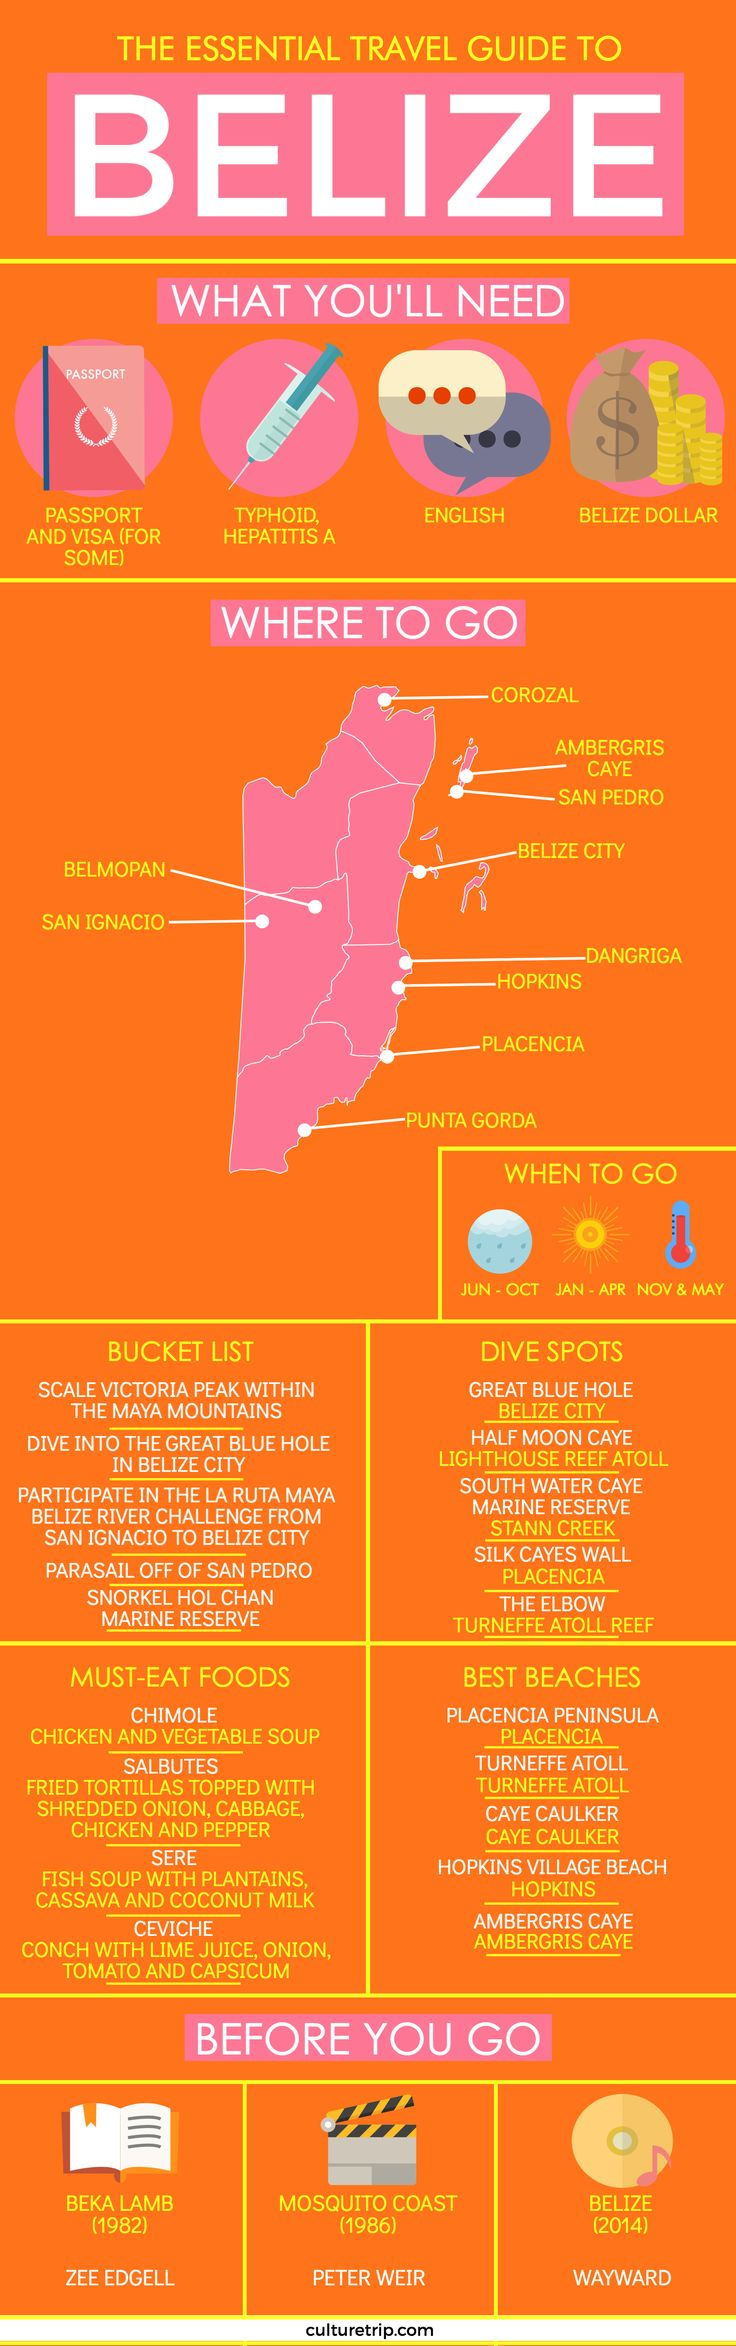 The Essential Travel Guide to Belize (Infographic)